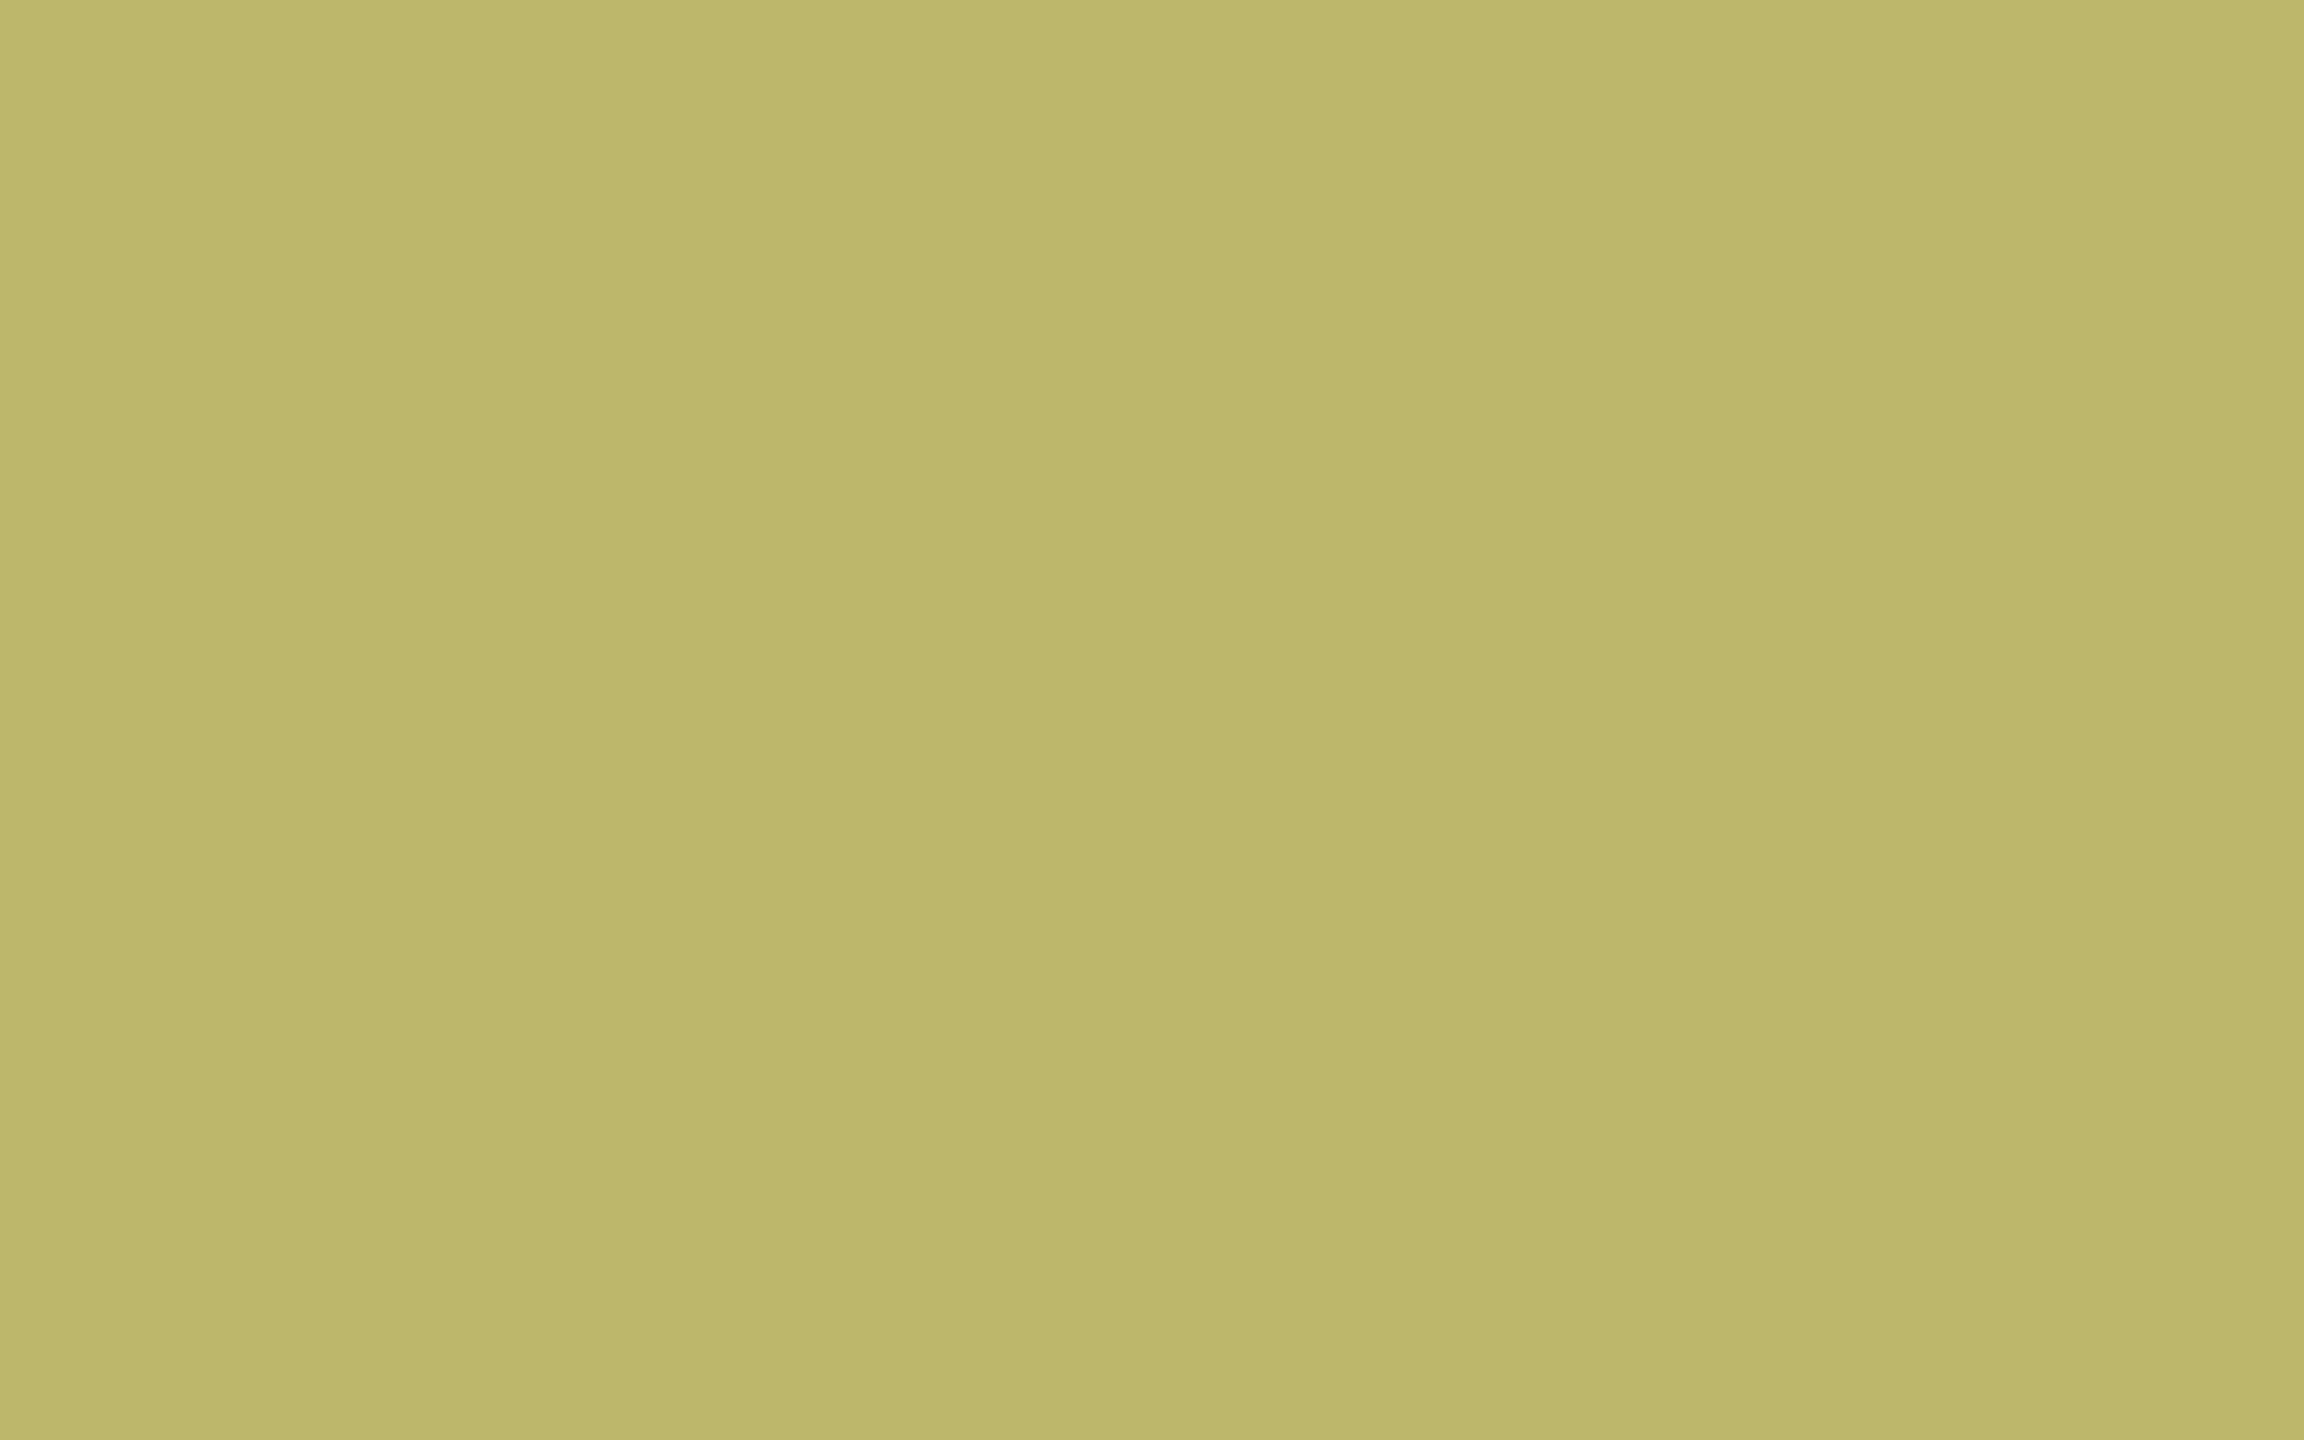 2304x1440 Dark Khaki Solid Color Background